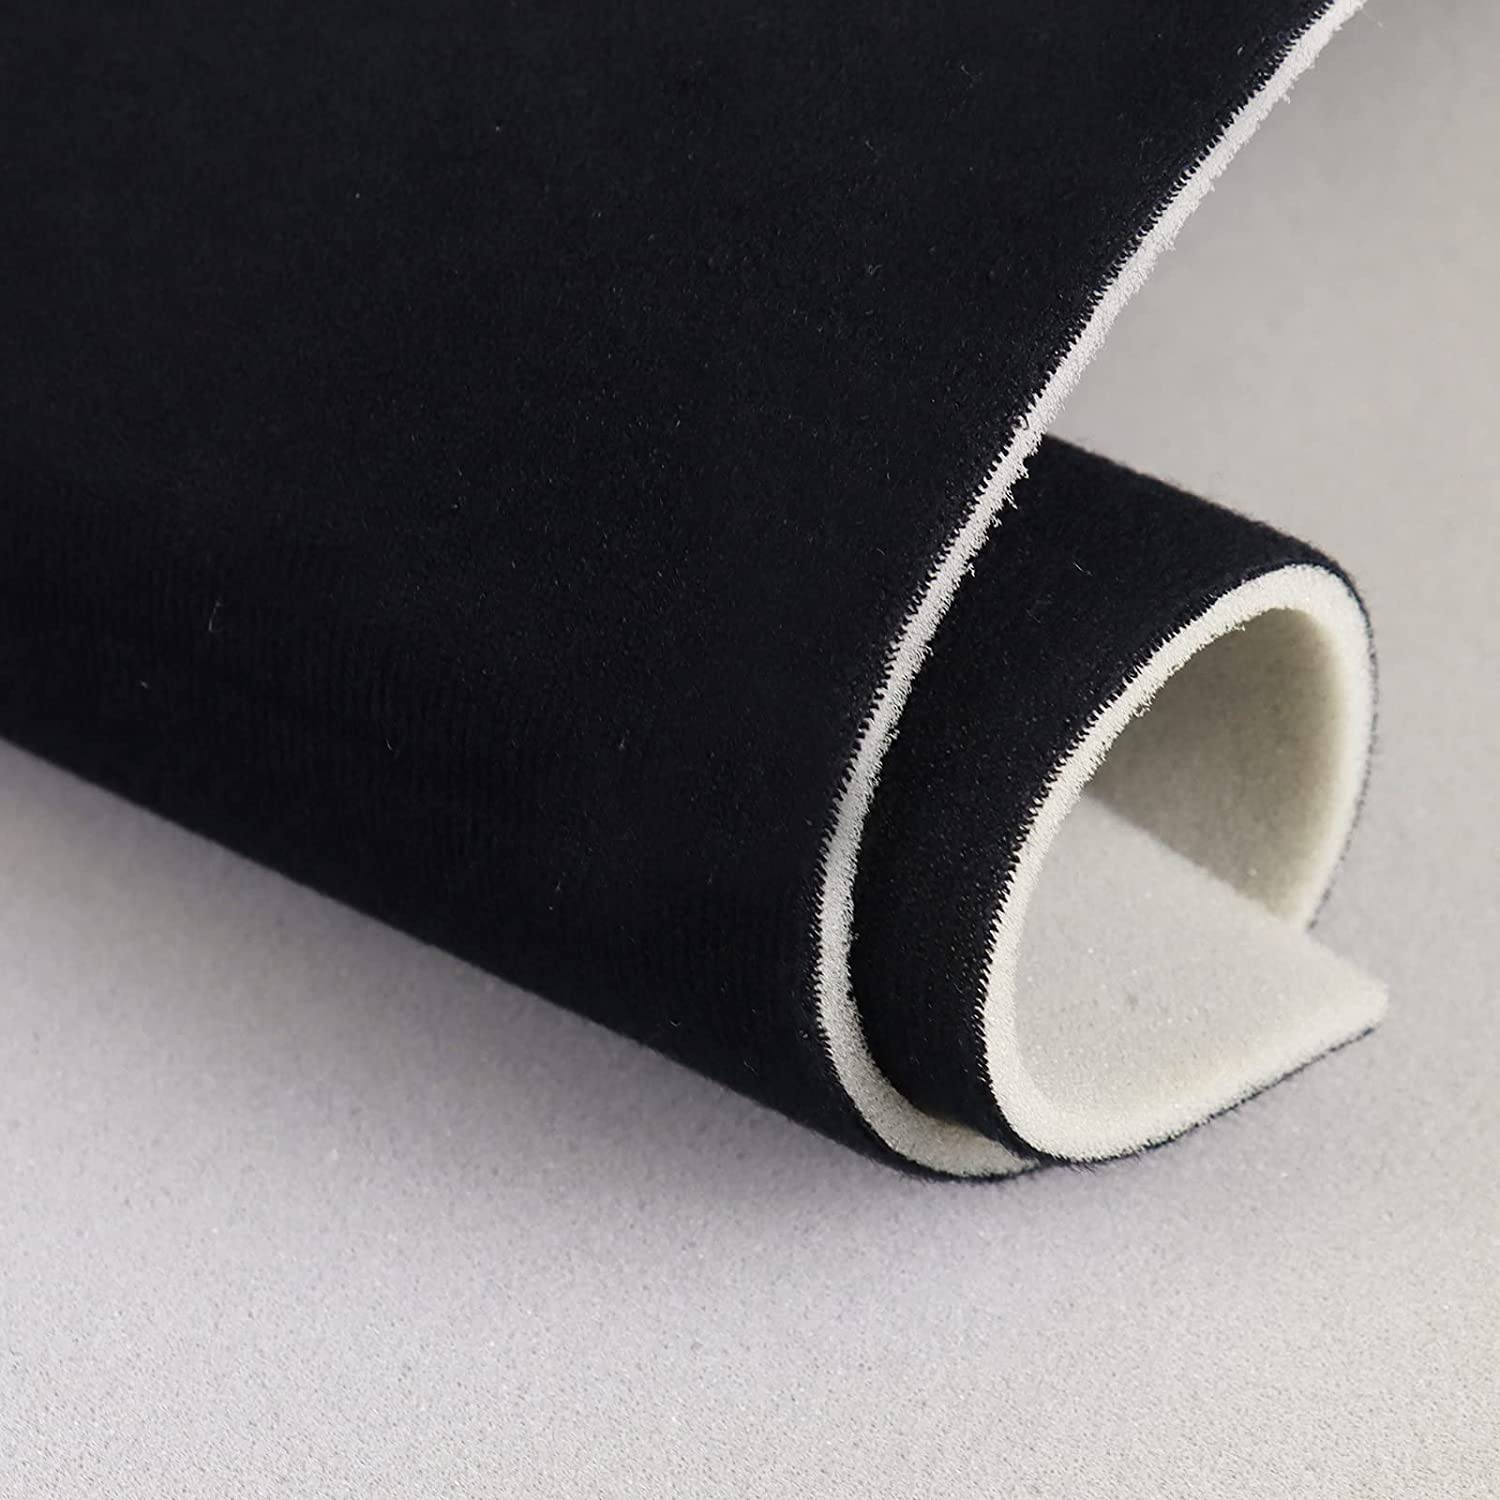 Roof Headliner Fabric with 35% OFF Foam - Automotive 2021 model Fo Material Backing